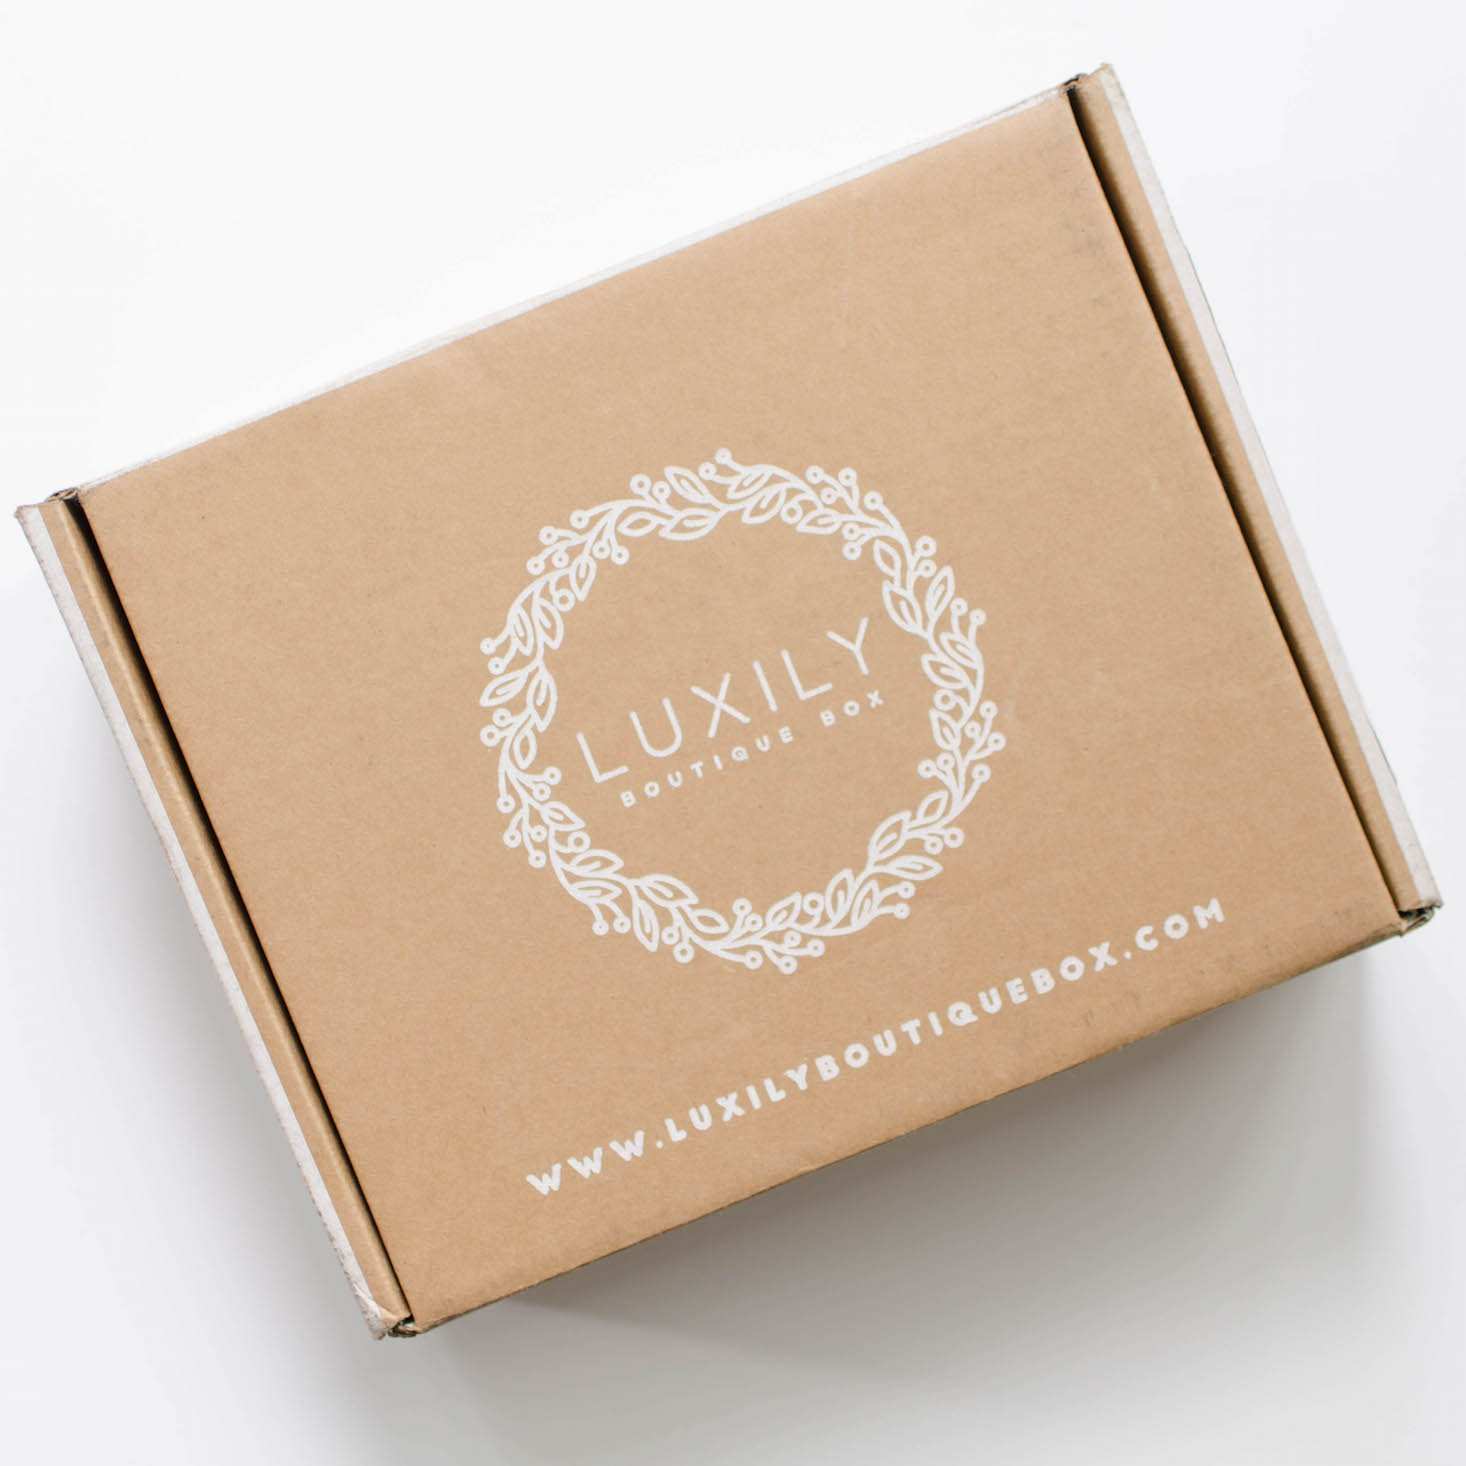 LuxilyBoutiqueAugust-043